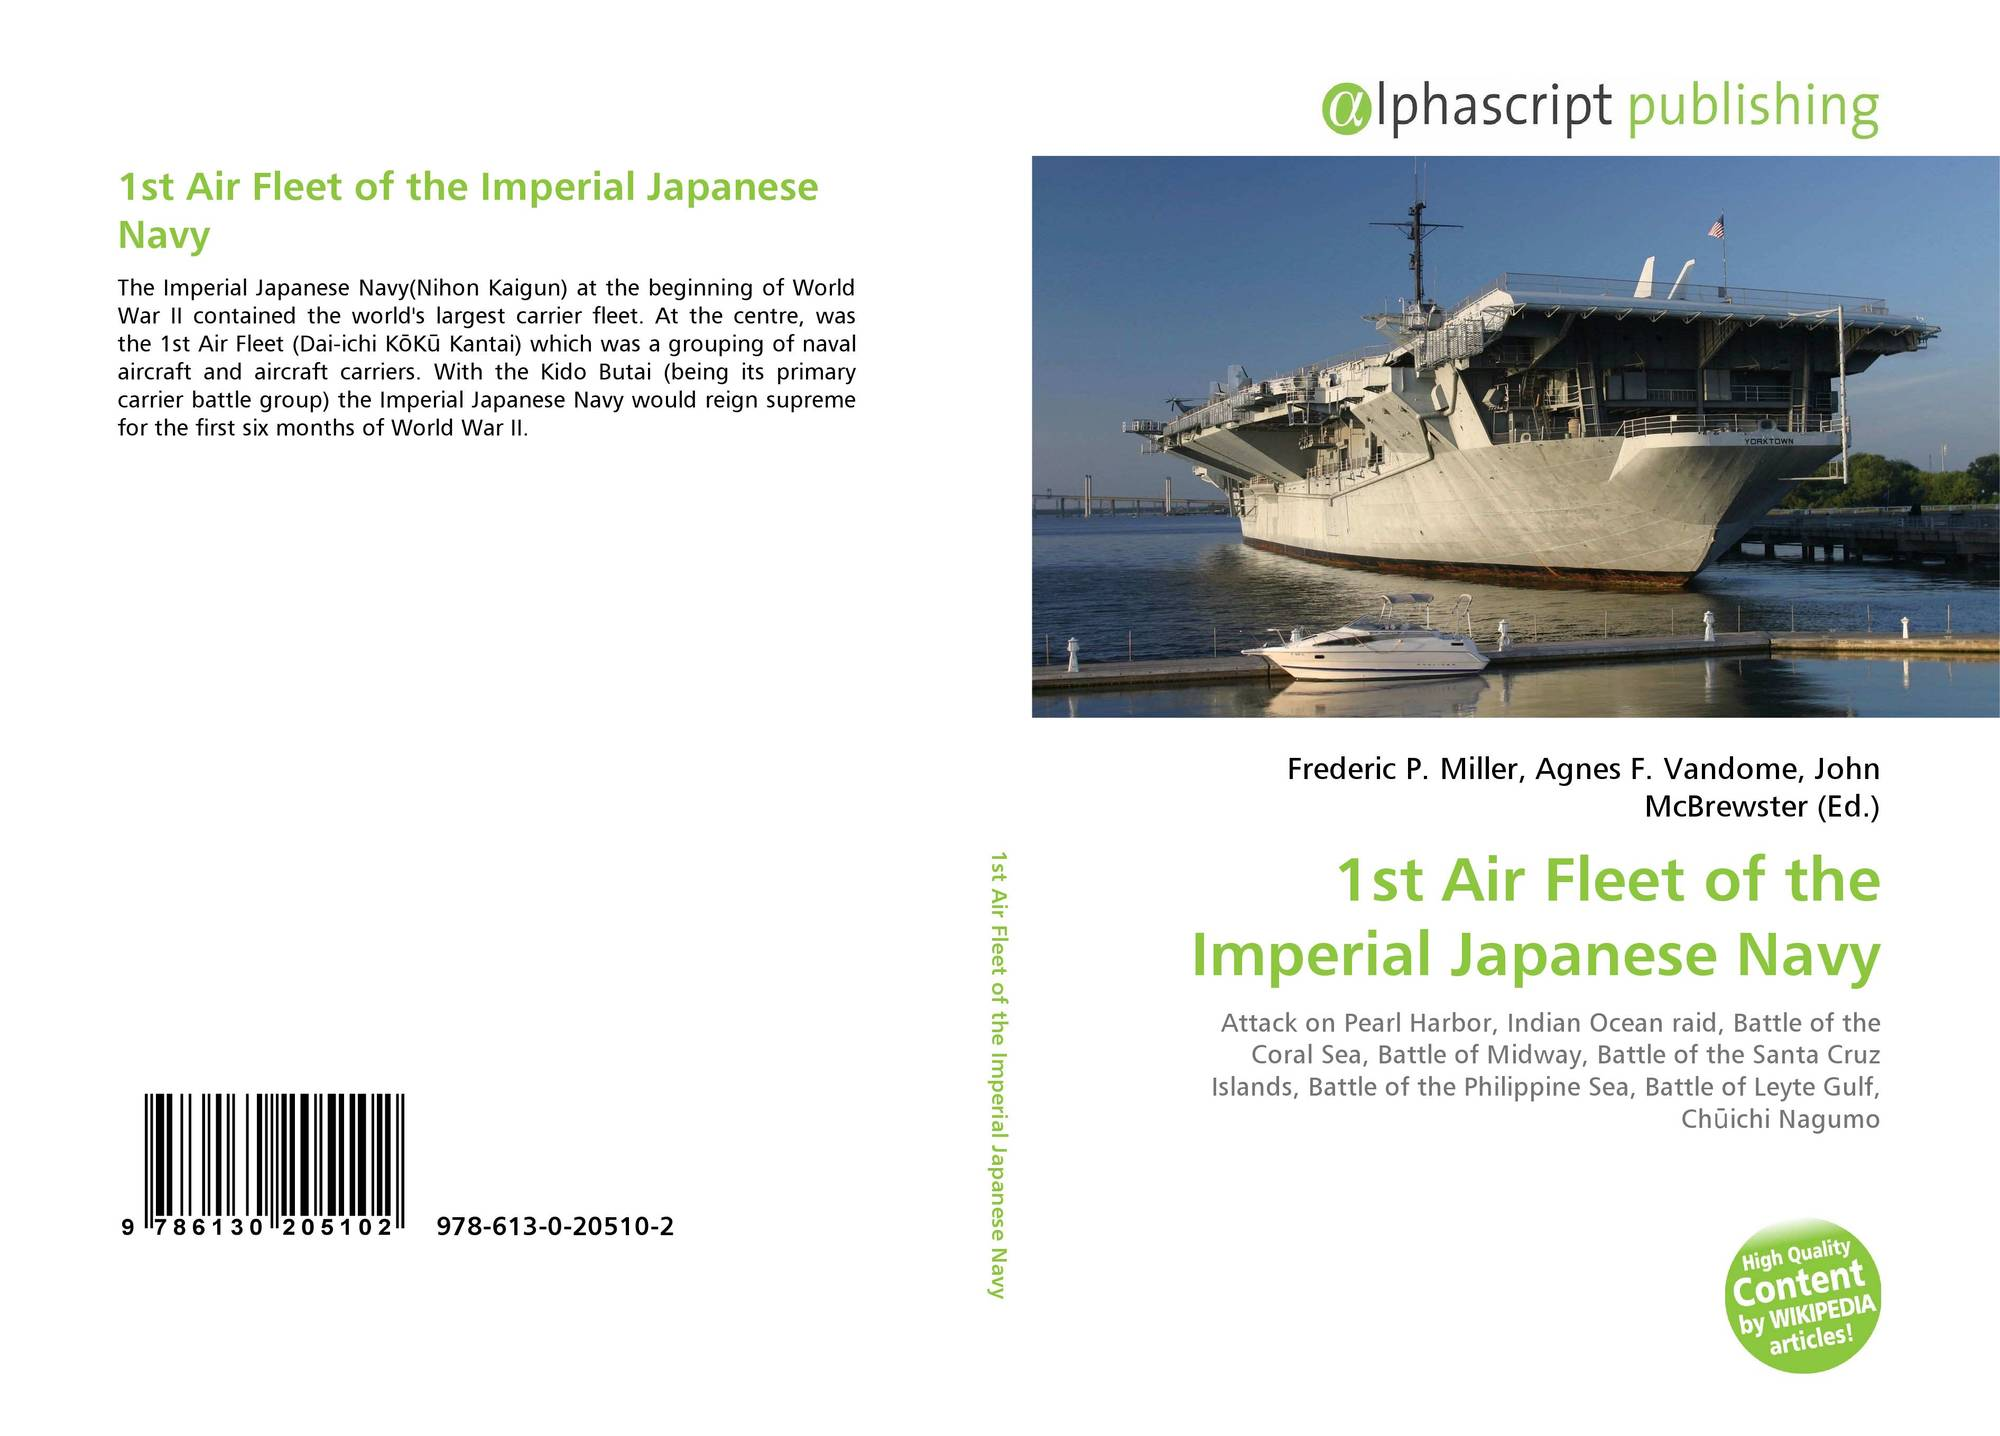 1st Air Fleet of the Imperial Japanese Navy, 978-613-0-20510